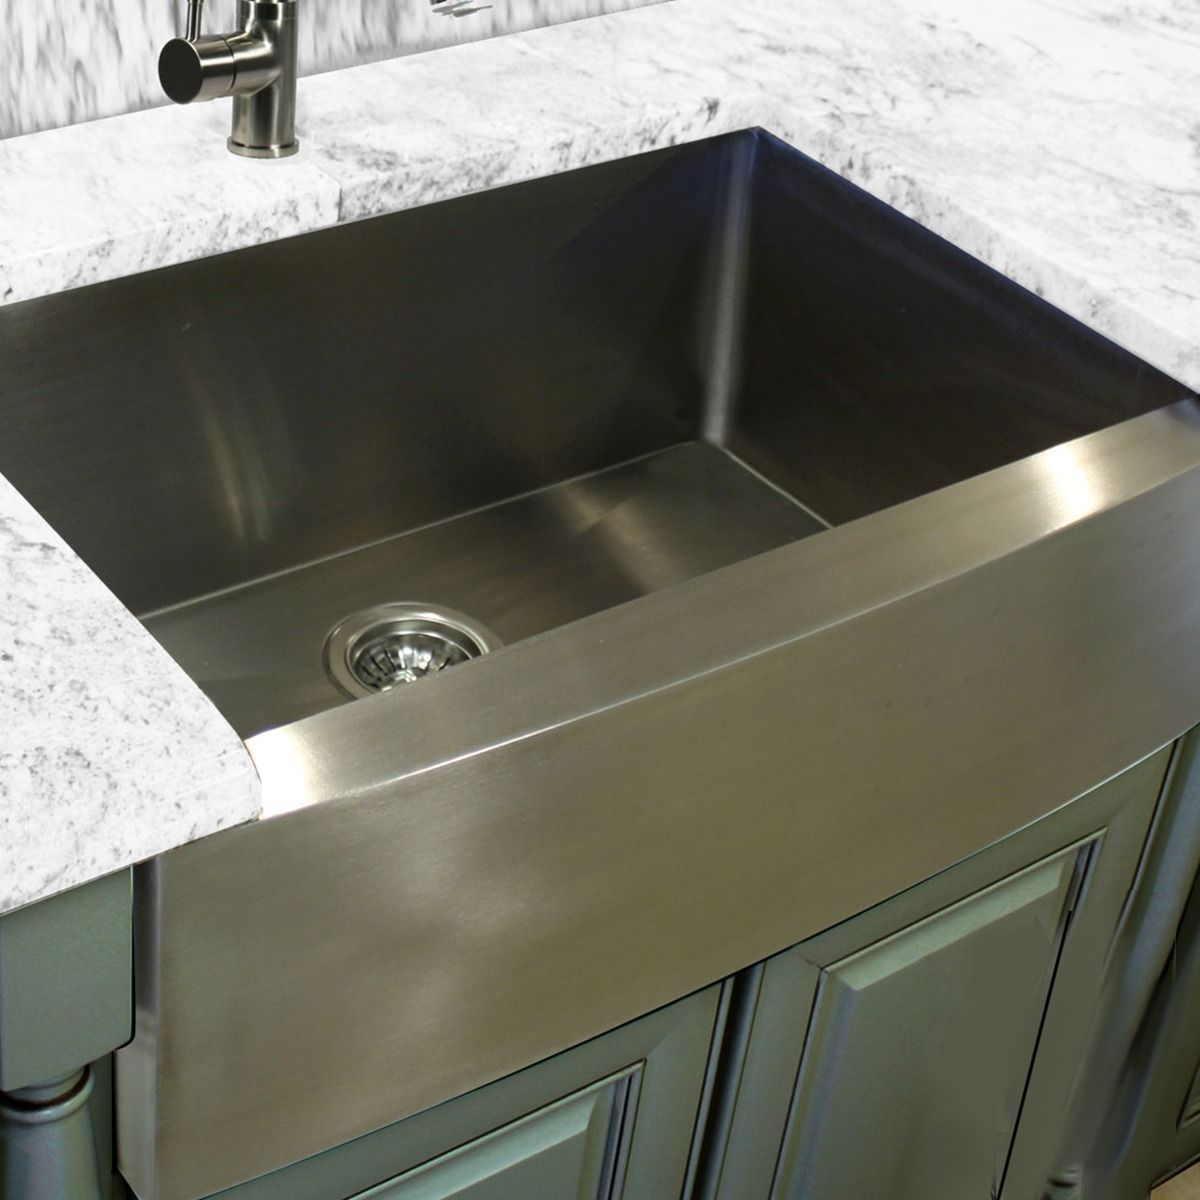 Stainless Steel 30 Inch Farmhouse Apron Sink Farmhouse Apron Sink Apron Sink Stainless Steel Farmhouse Sink